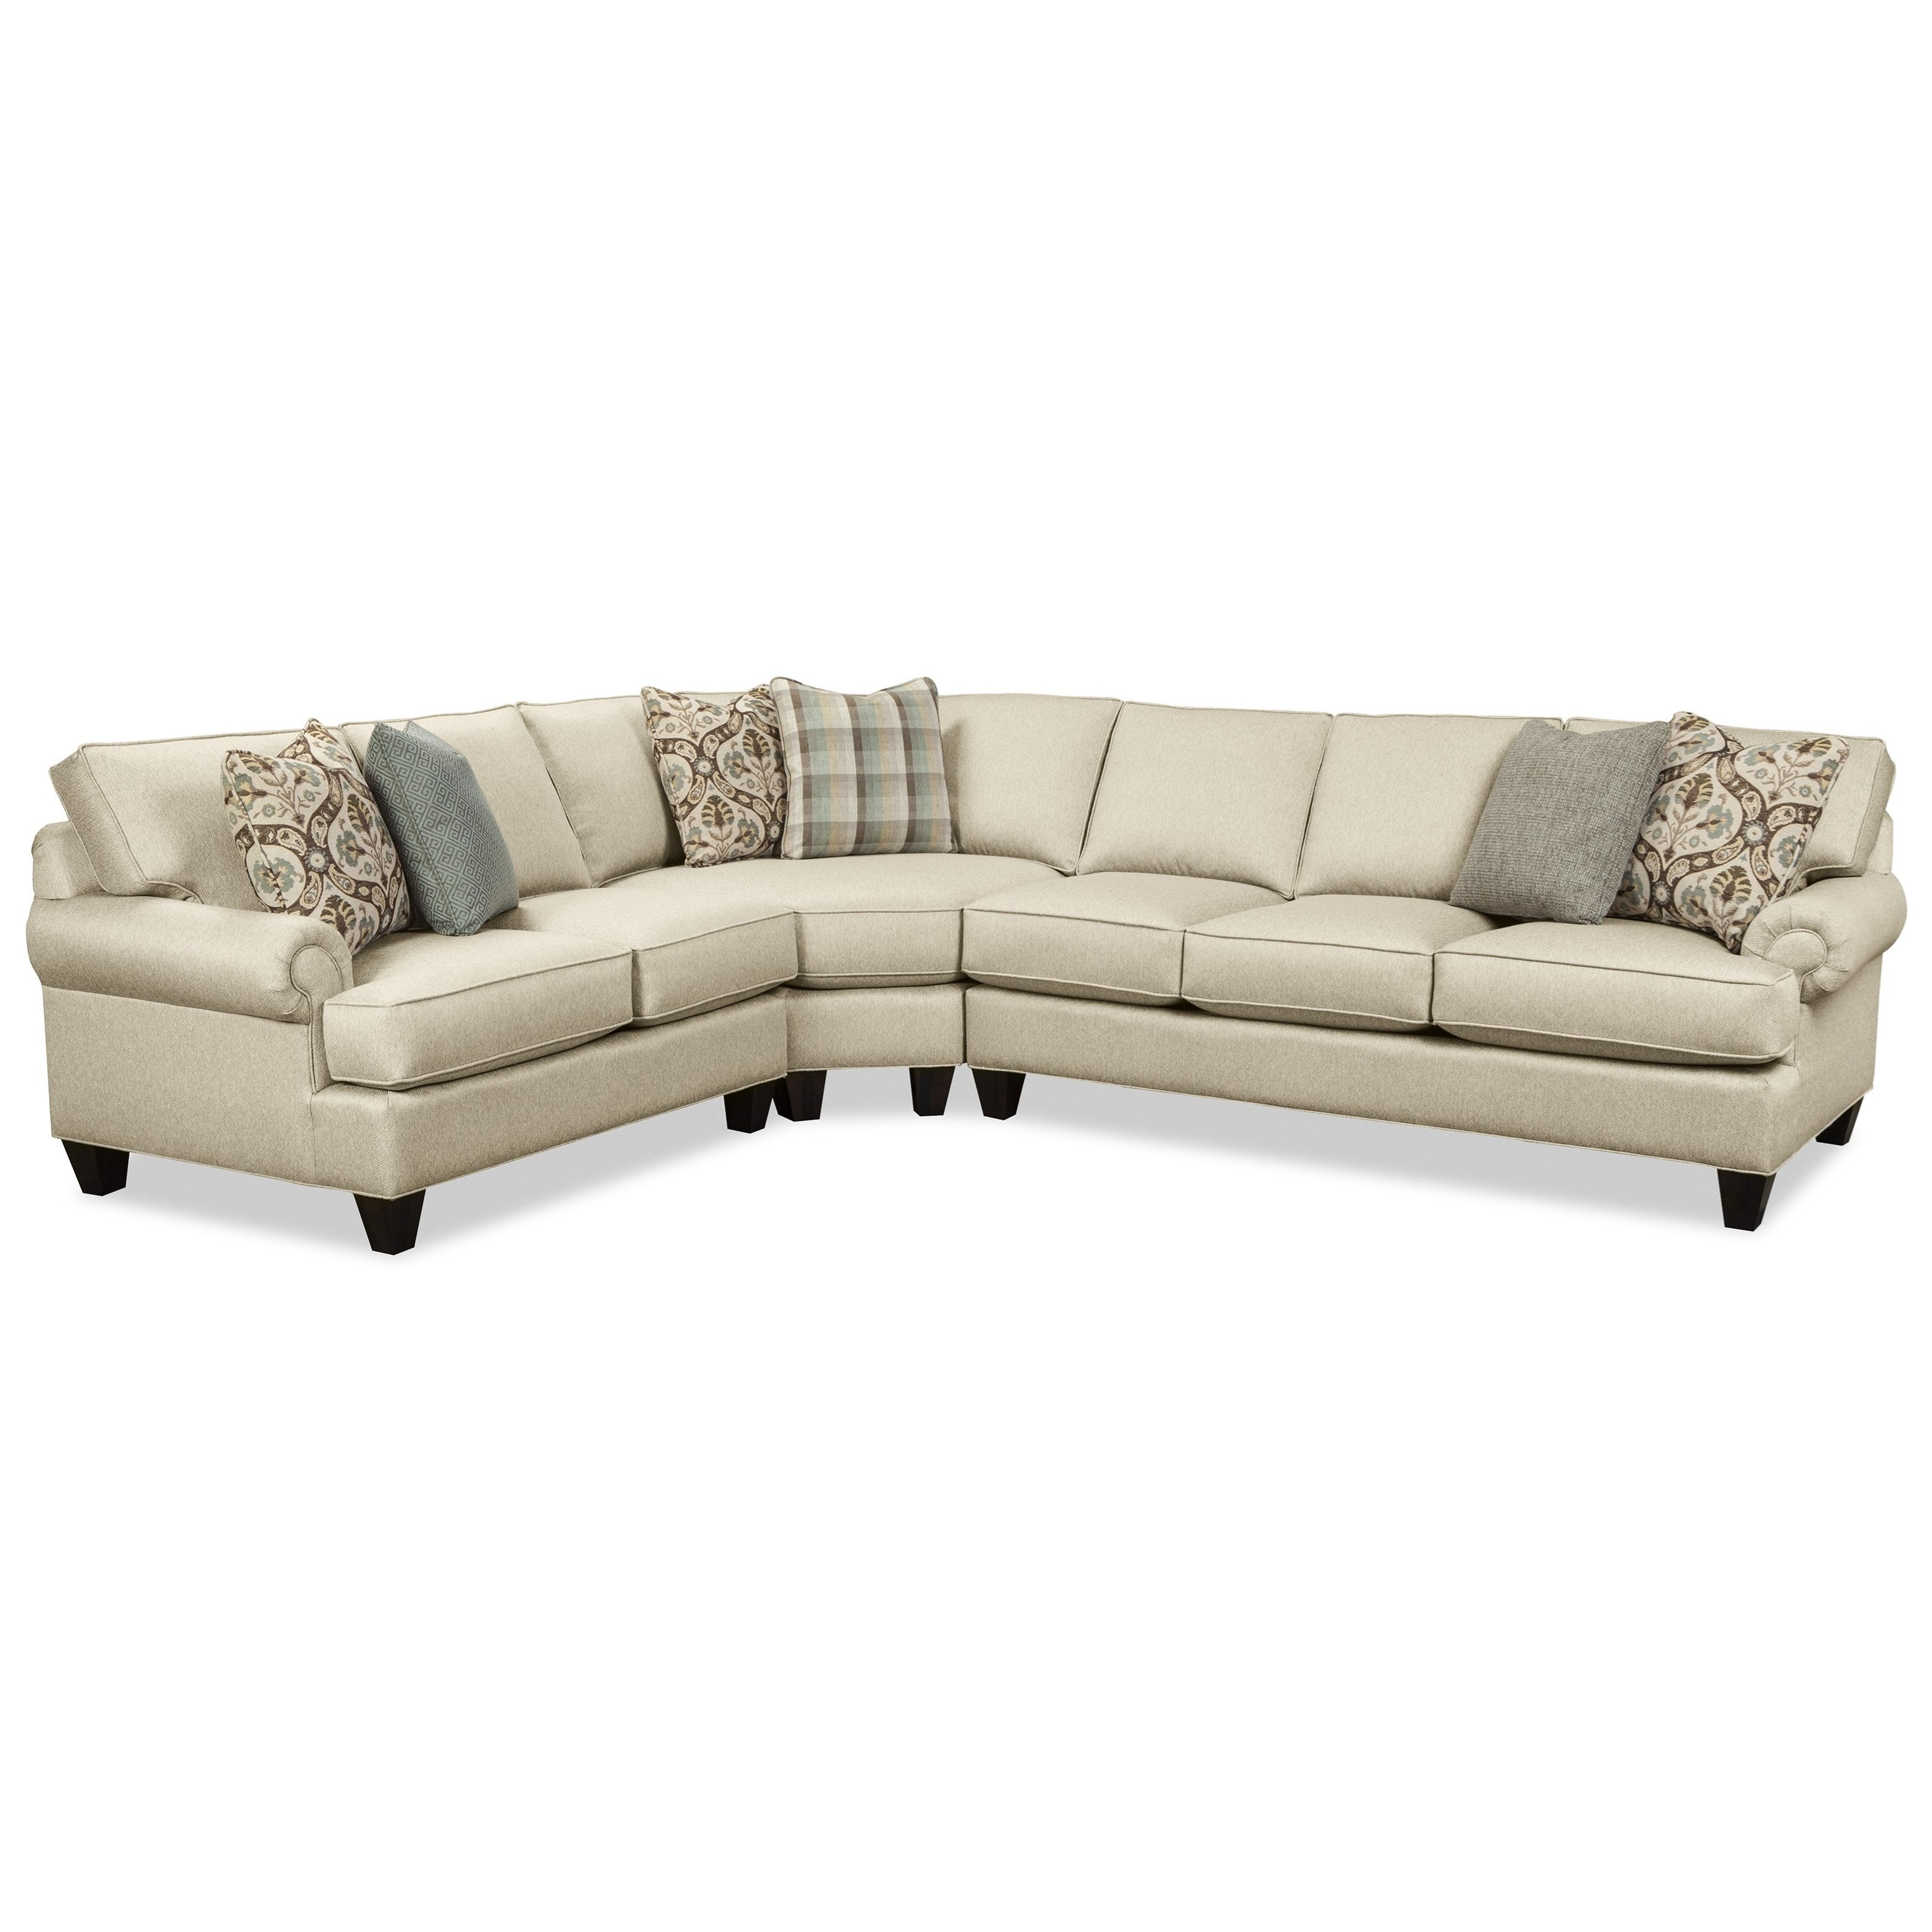 Hickory Craft C9 Custom Collection Customizable Three Piece For Adeline 3 Piece Sectionals (View 10 of 25)